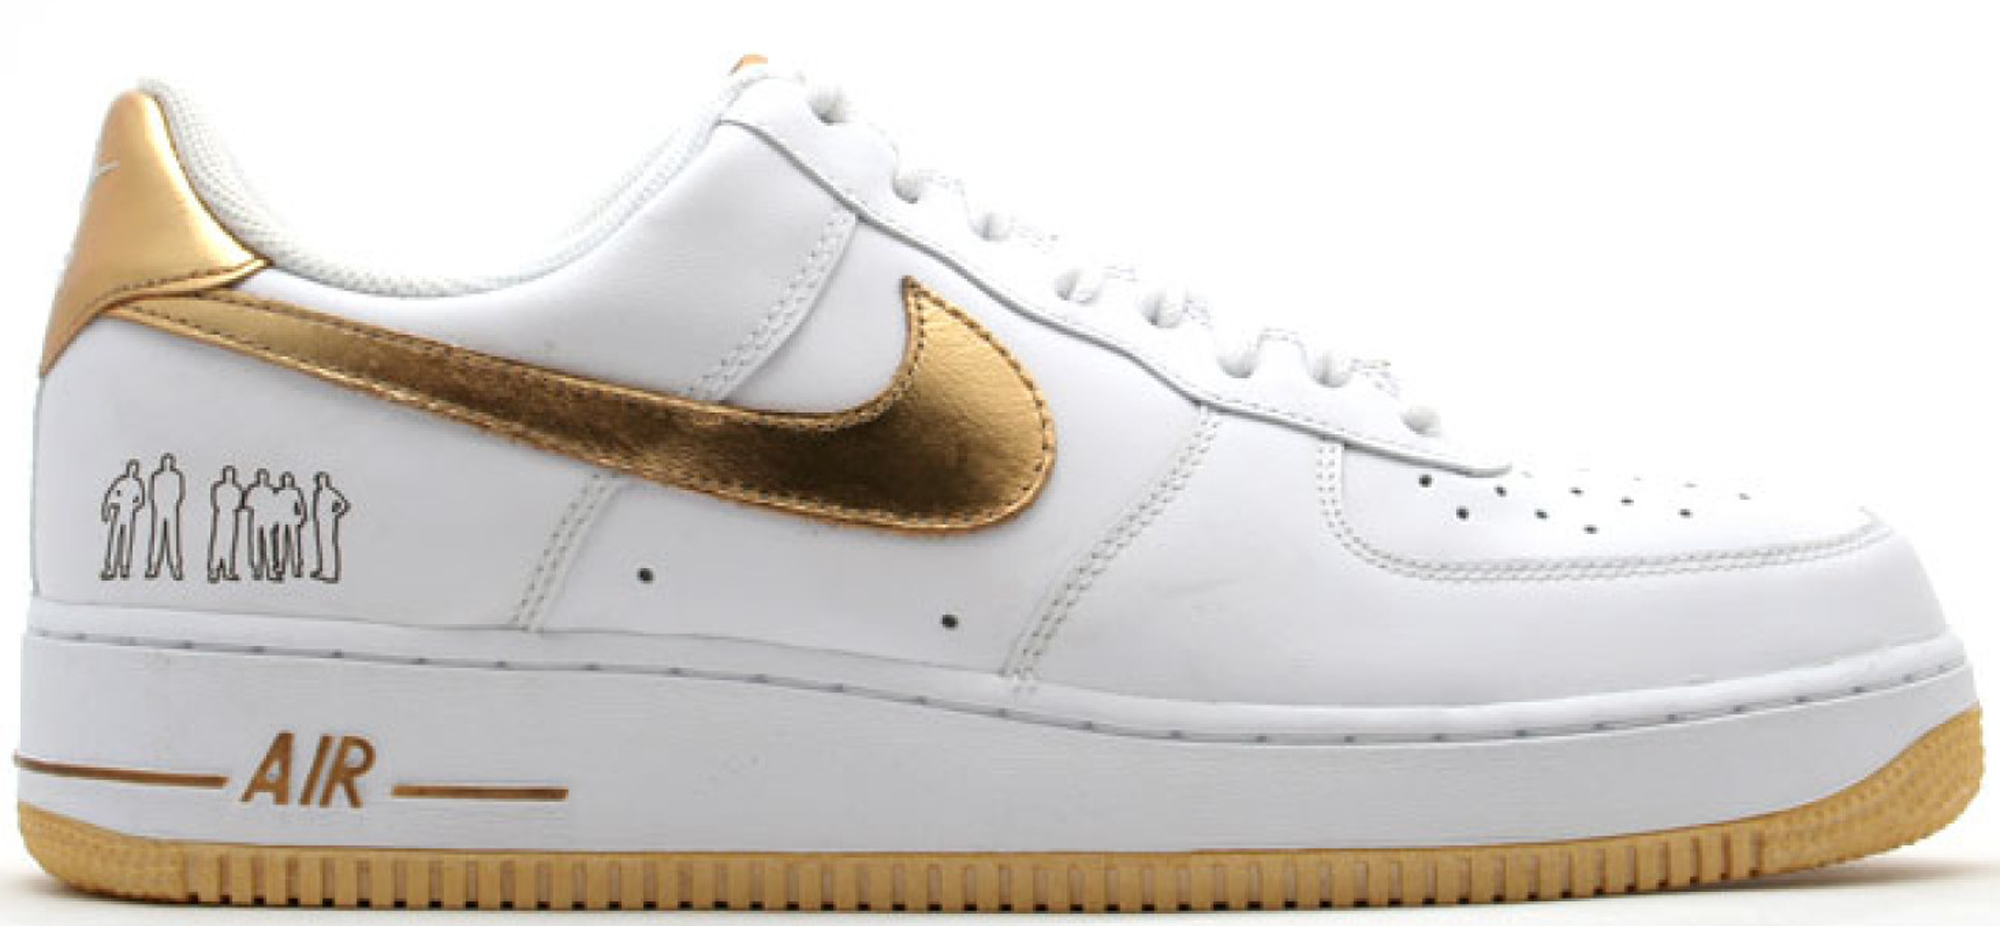 Nike Air Force 1 Low Players White